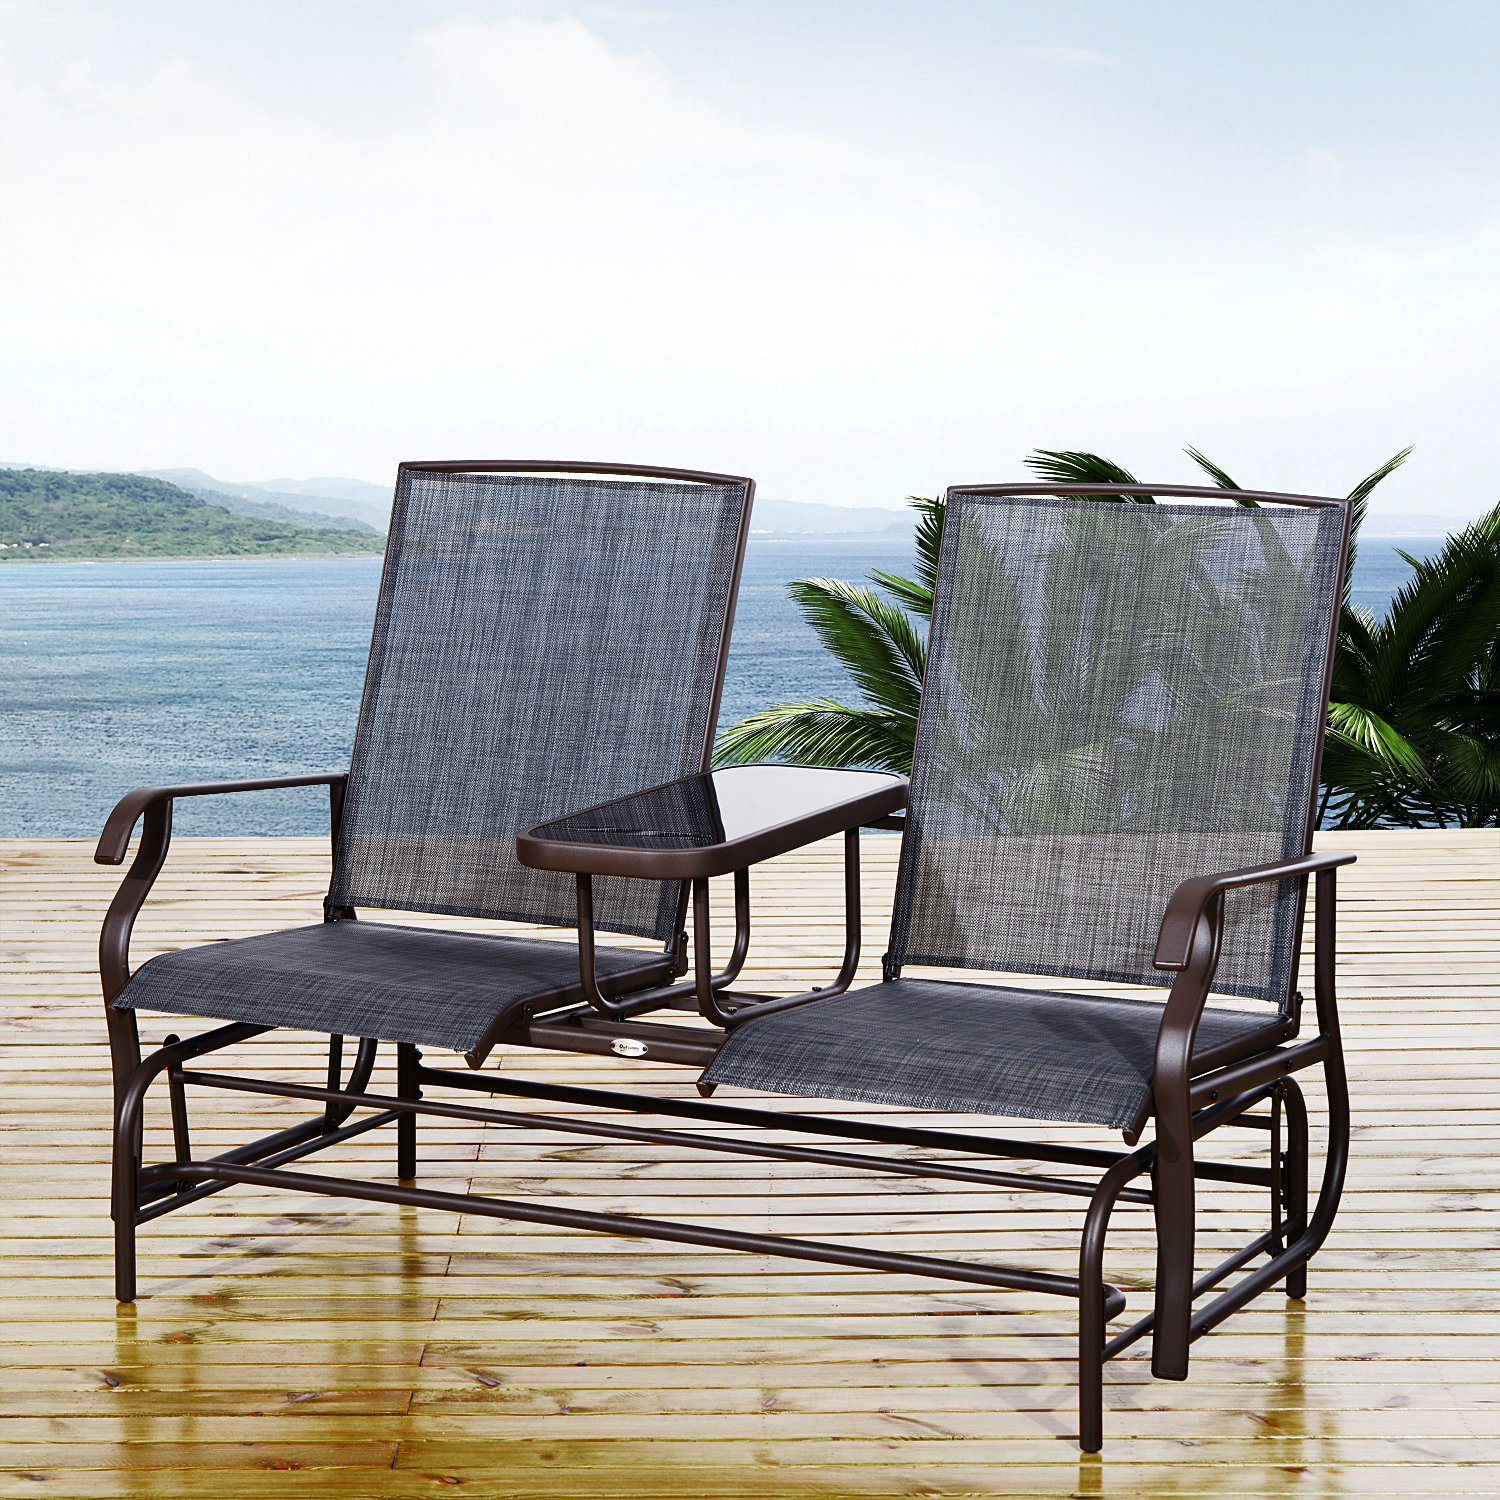 Festnight 2 Person Outdoor Patio Double Glider Chair with Center Coffee Table, Mesh Fabric